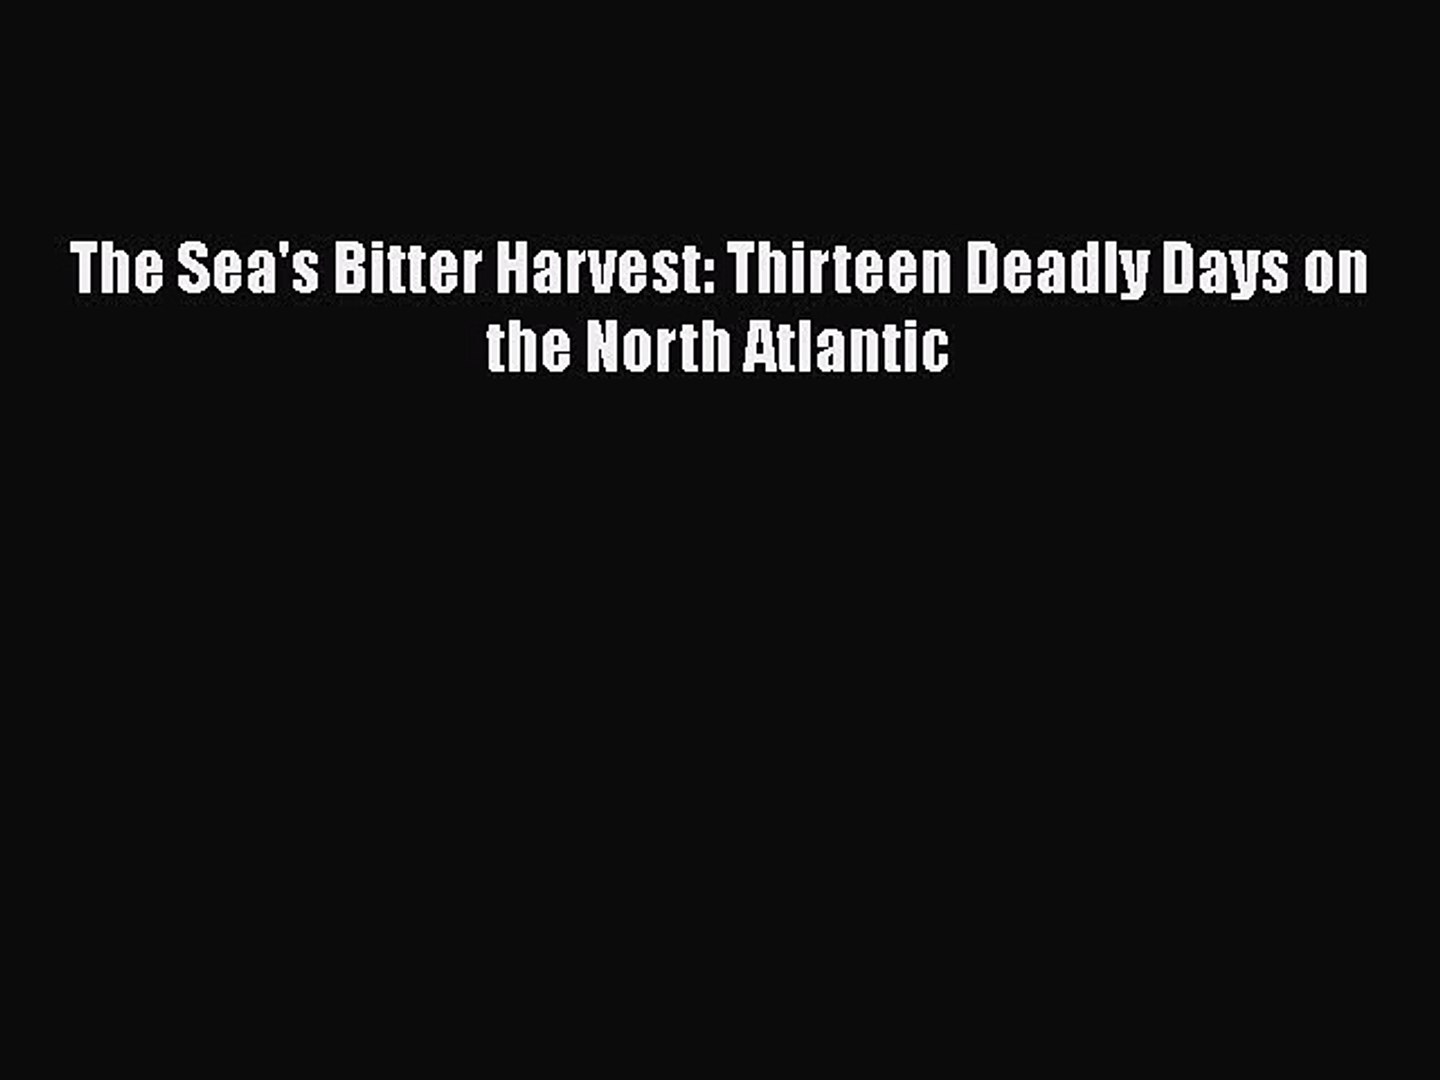 Download The Sea's Bitter Harvest: Thirteen Deadly Days on the North Atlantic PDF Free